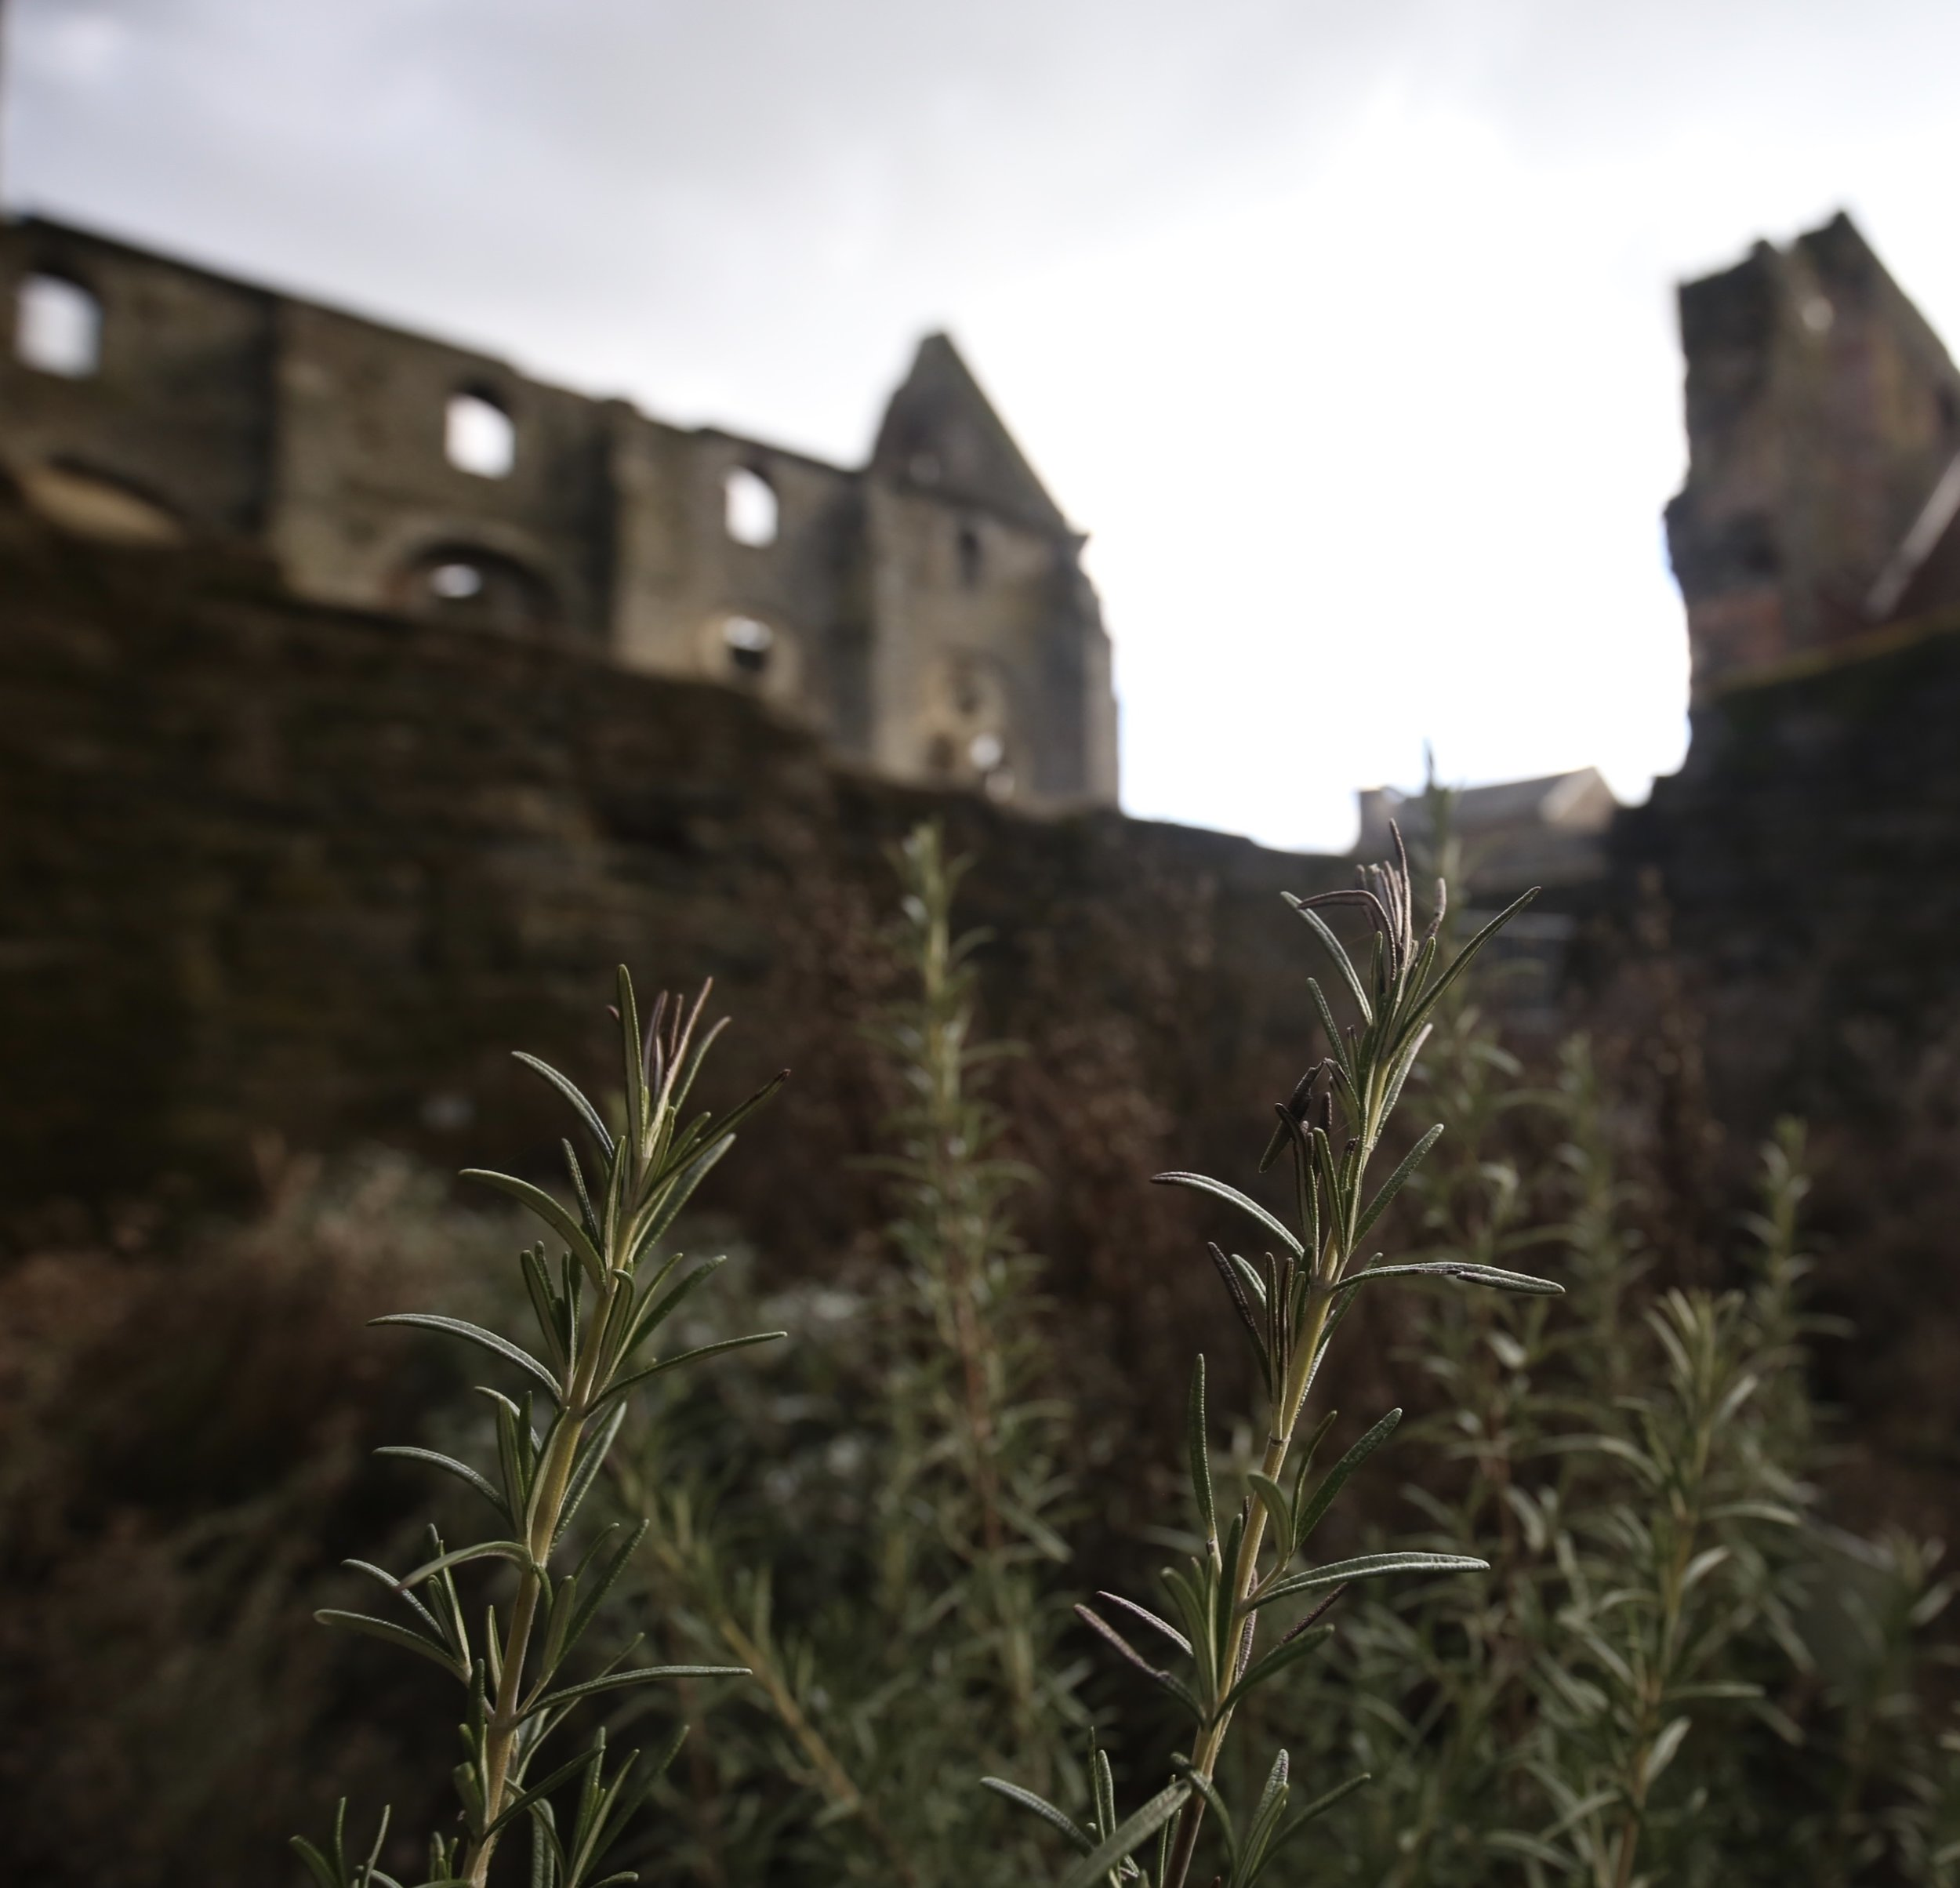 Rosemary still grows in the gardens of the ruined Abbey of Villers.